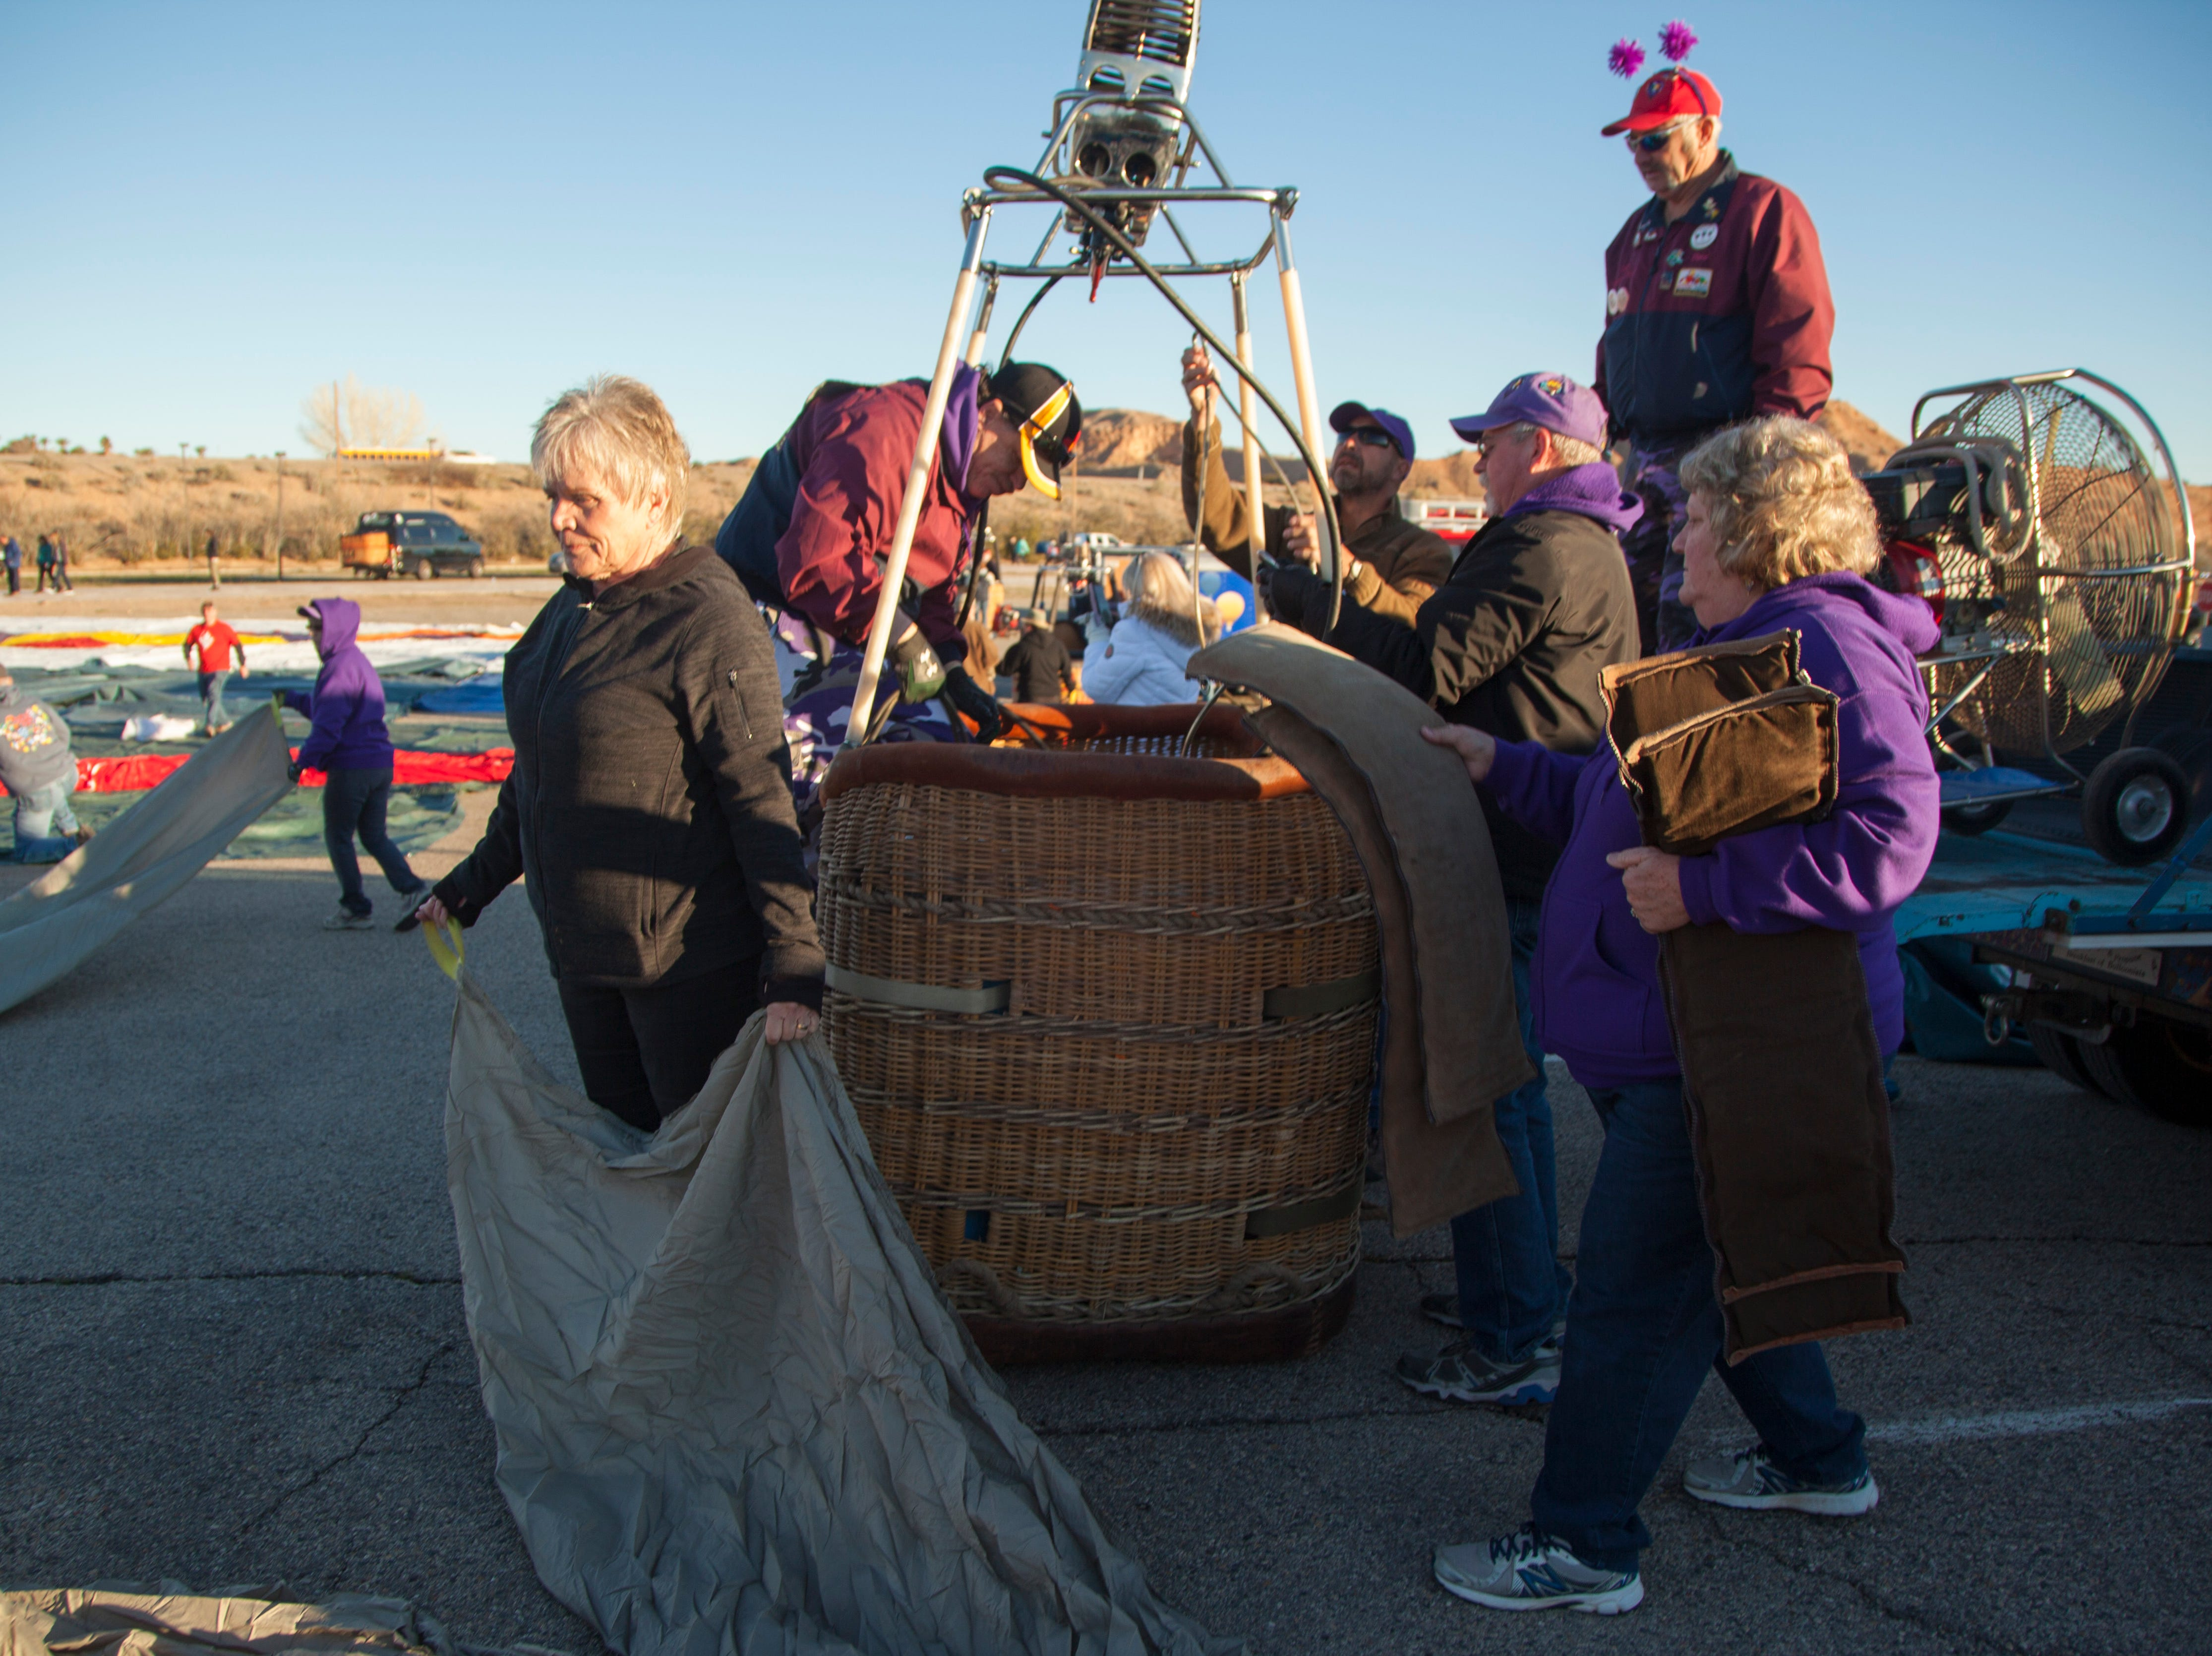 Hot air balloon fans gather at the Casablanca for the annual Mesquite Balloon Festival Friday, Jan. 25, 2019.